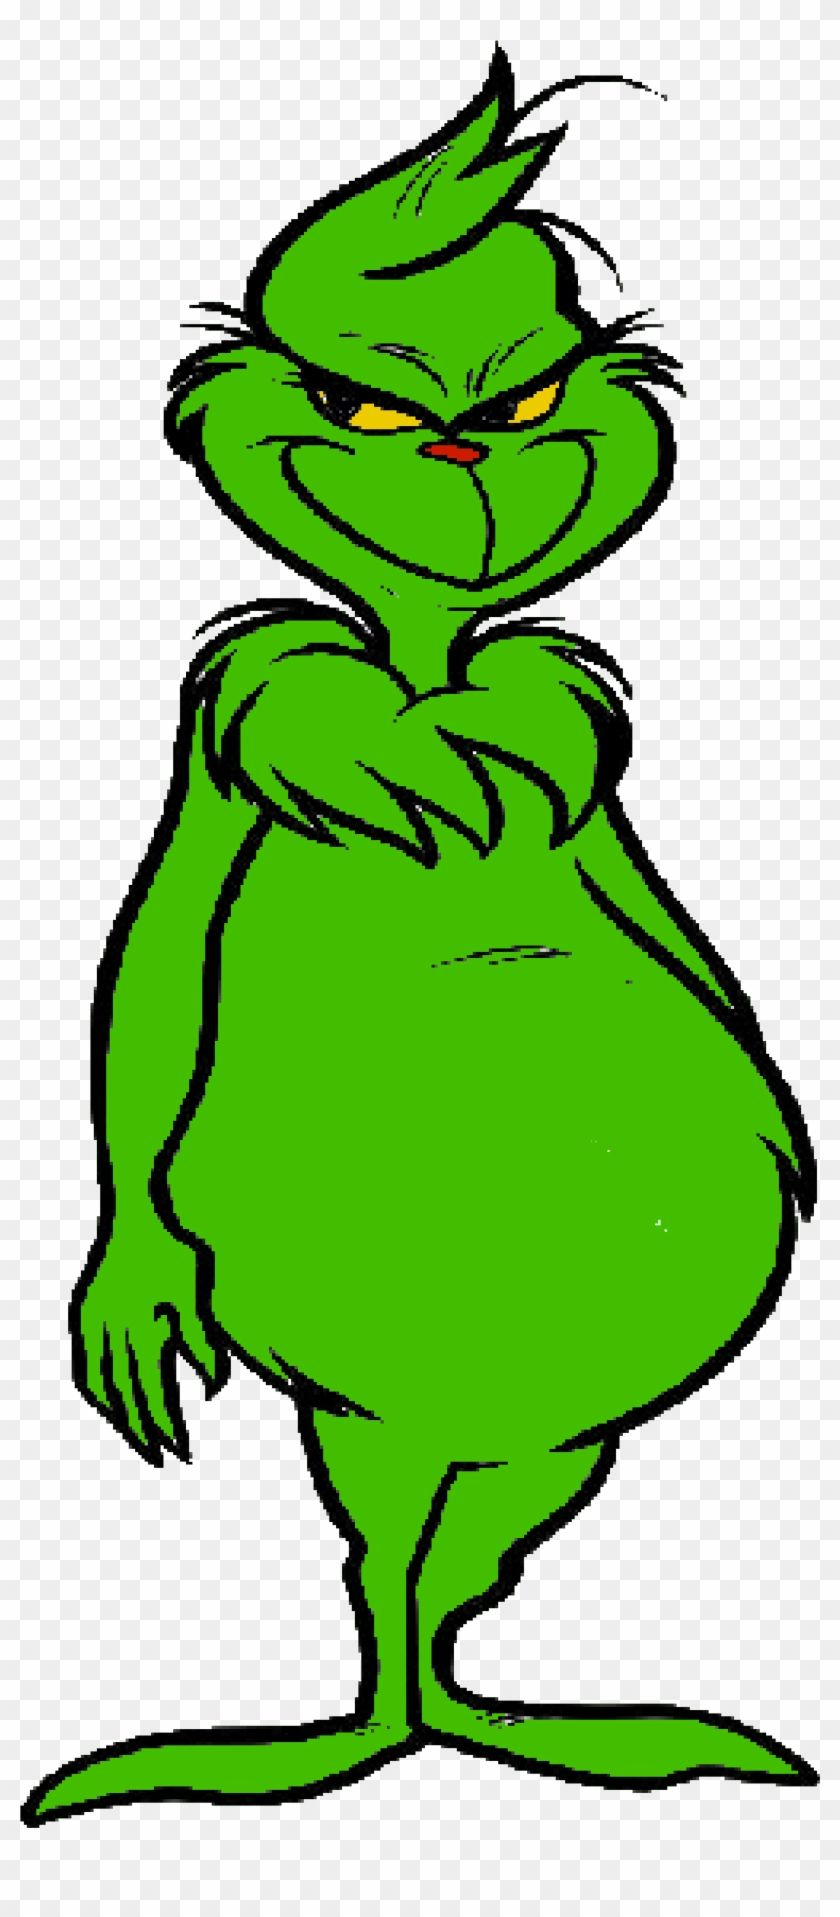 Use Grinch Template Grinch Png Free Transparent Png Clipart Grinch Svg Free Grinch Grinch Heart